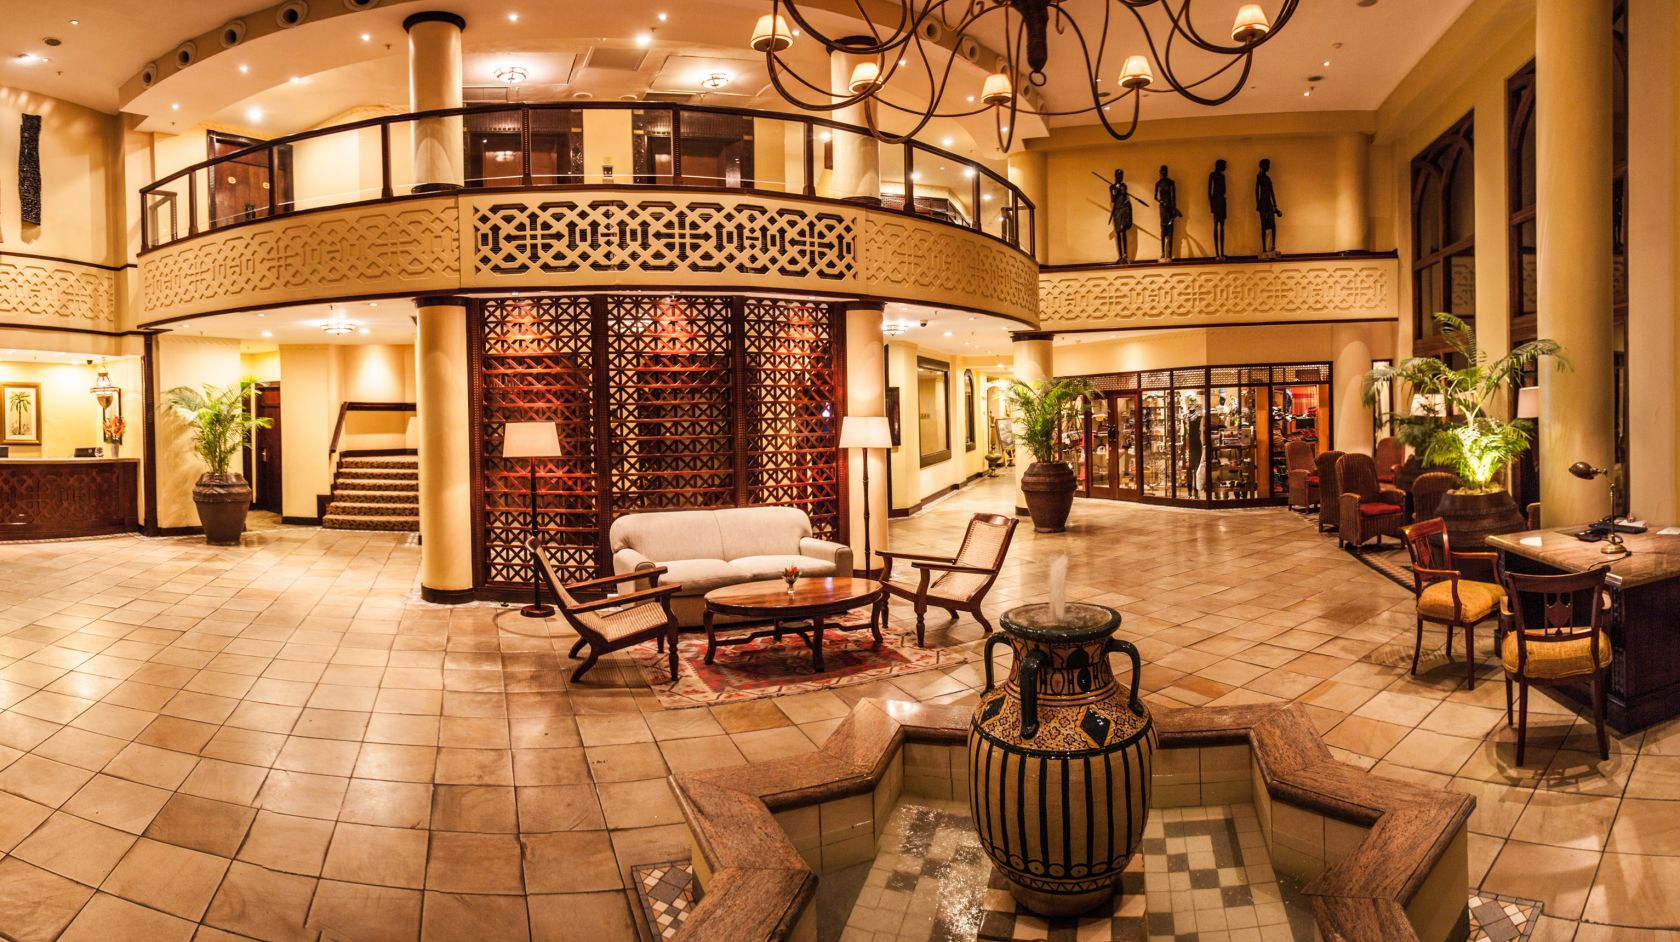 Hotels in Dar es Salaam: The lobby of the Southern Sun Dar es Salaam